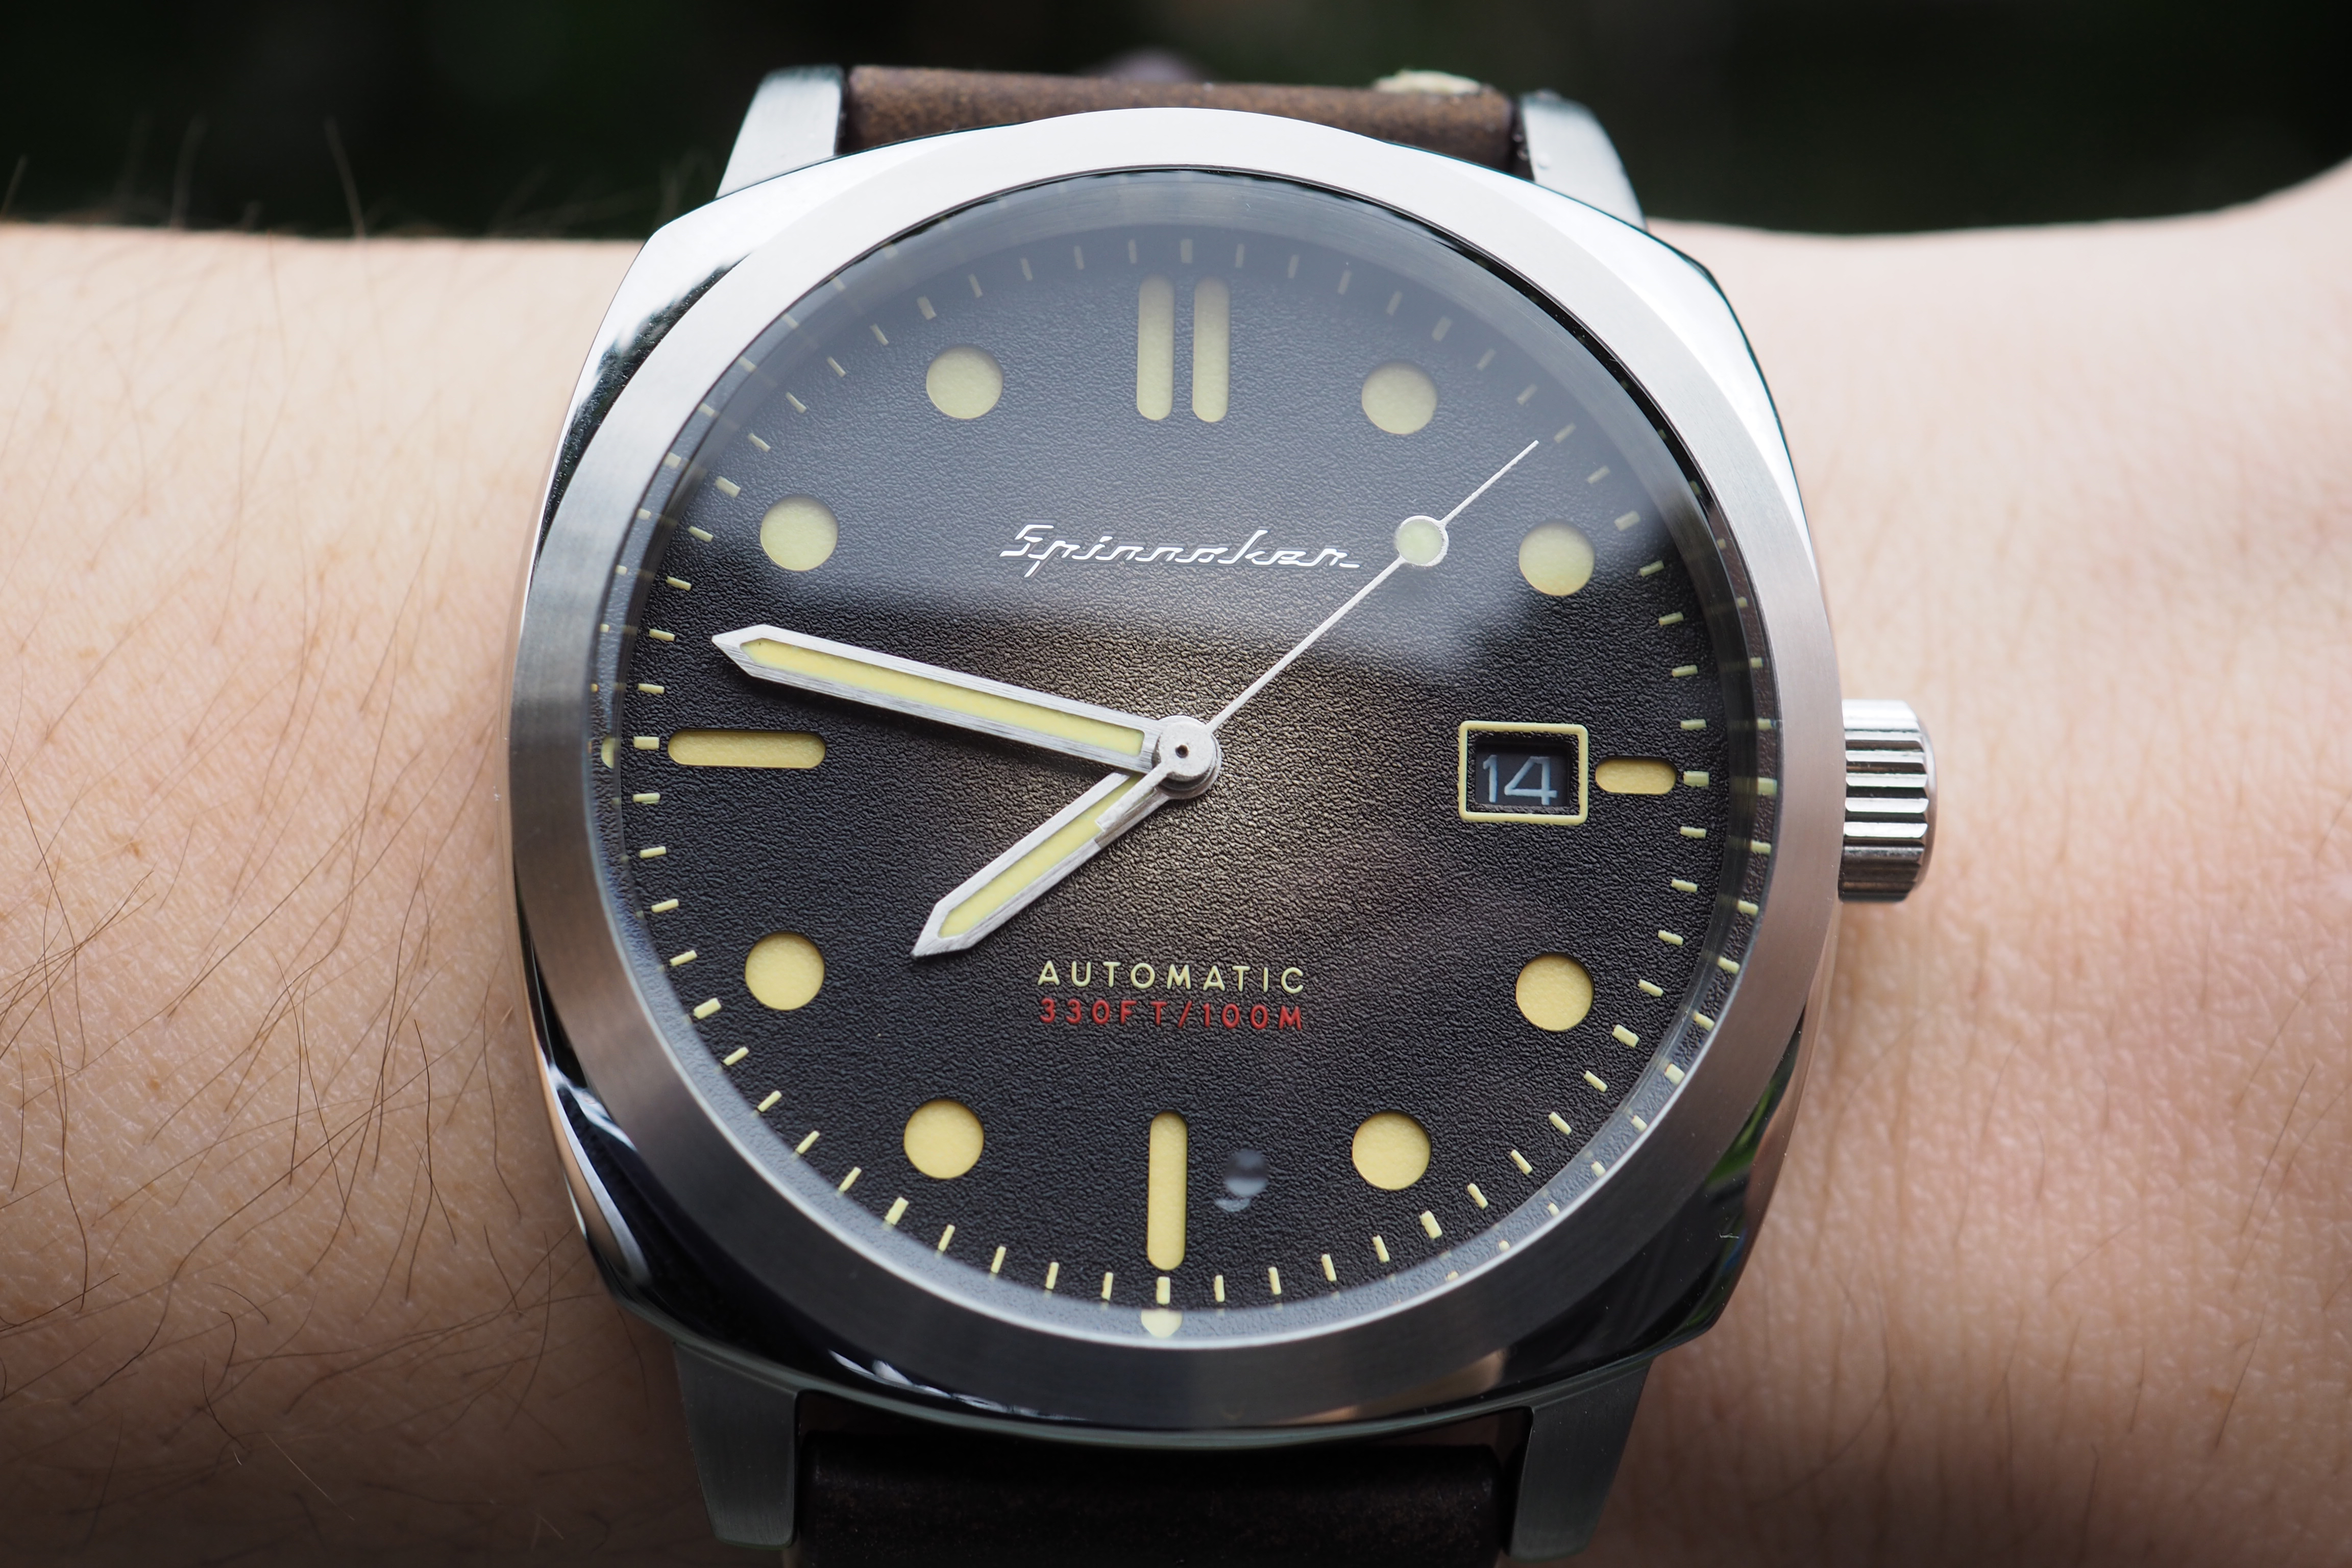 Hull dial on wrist